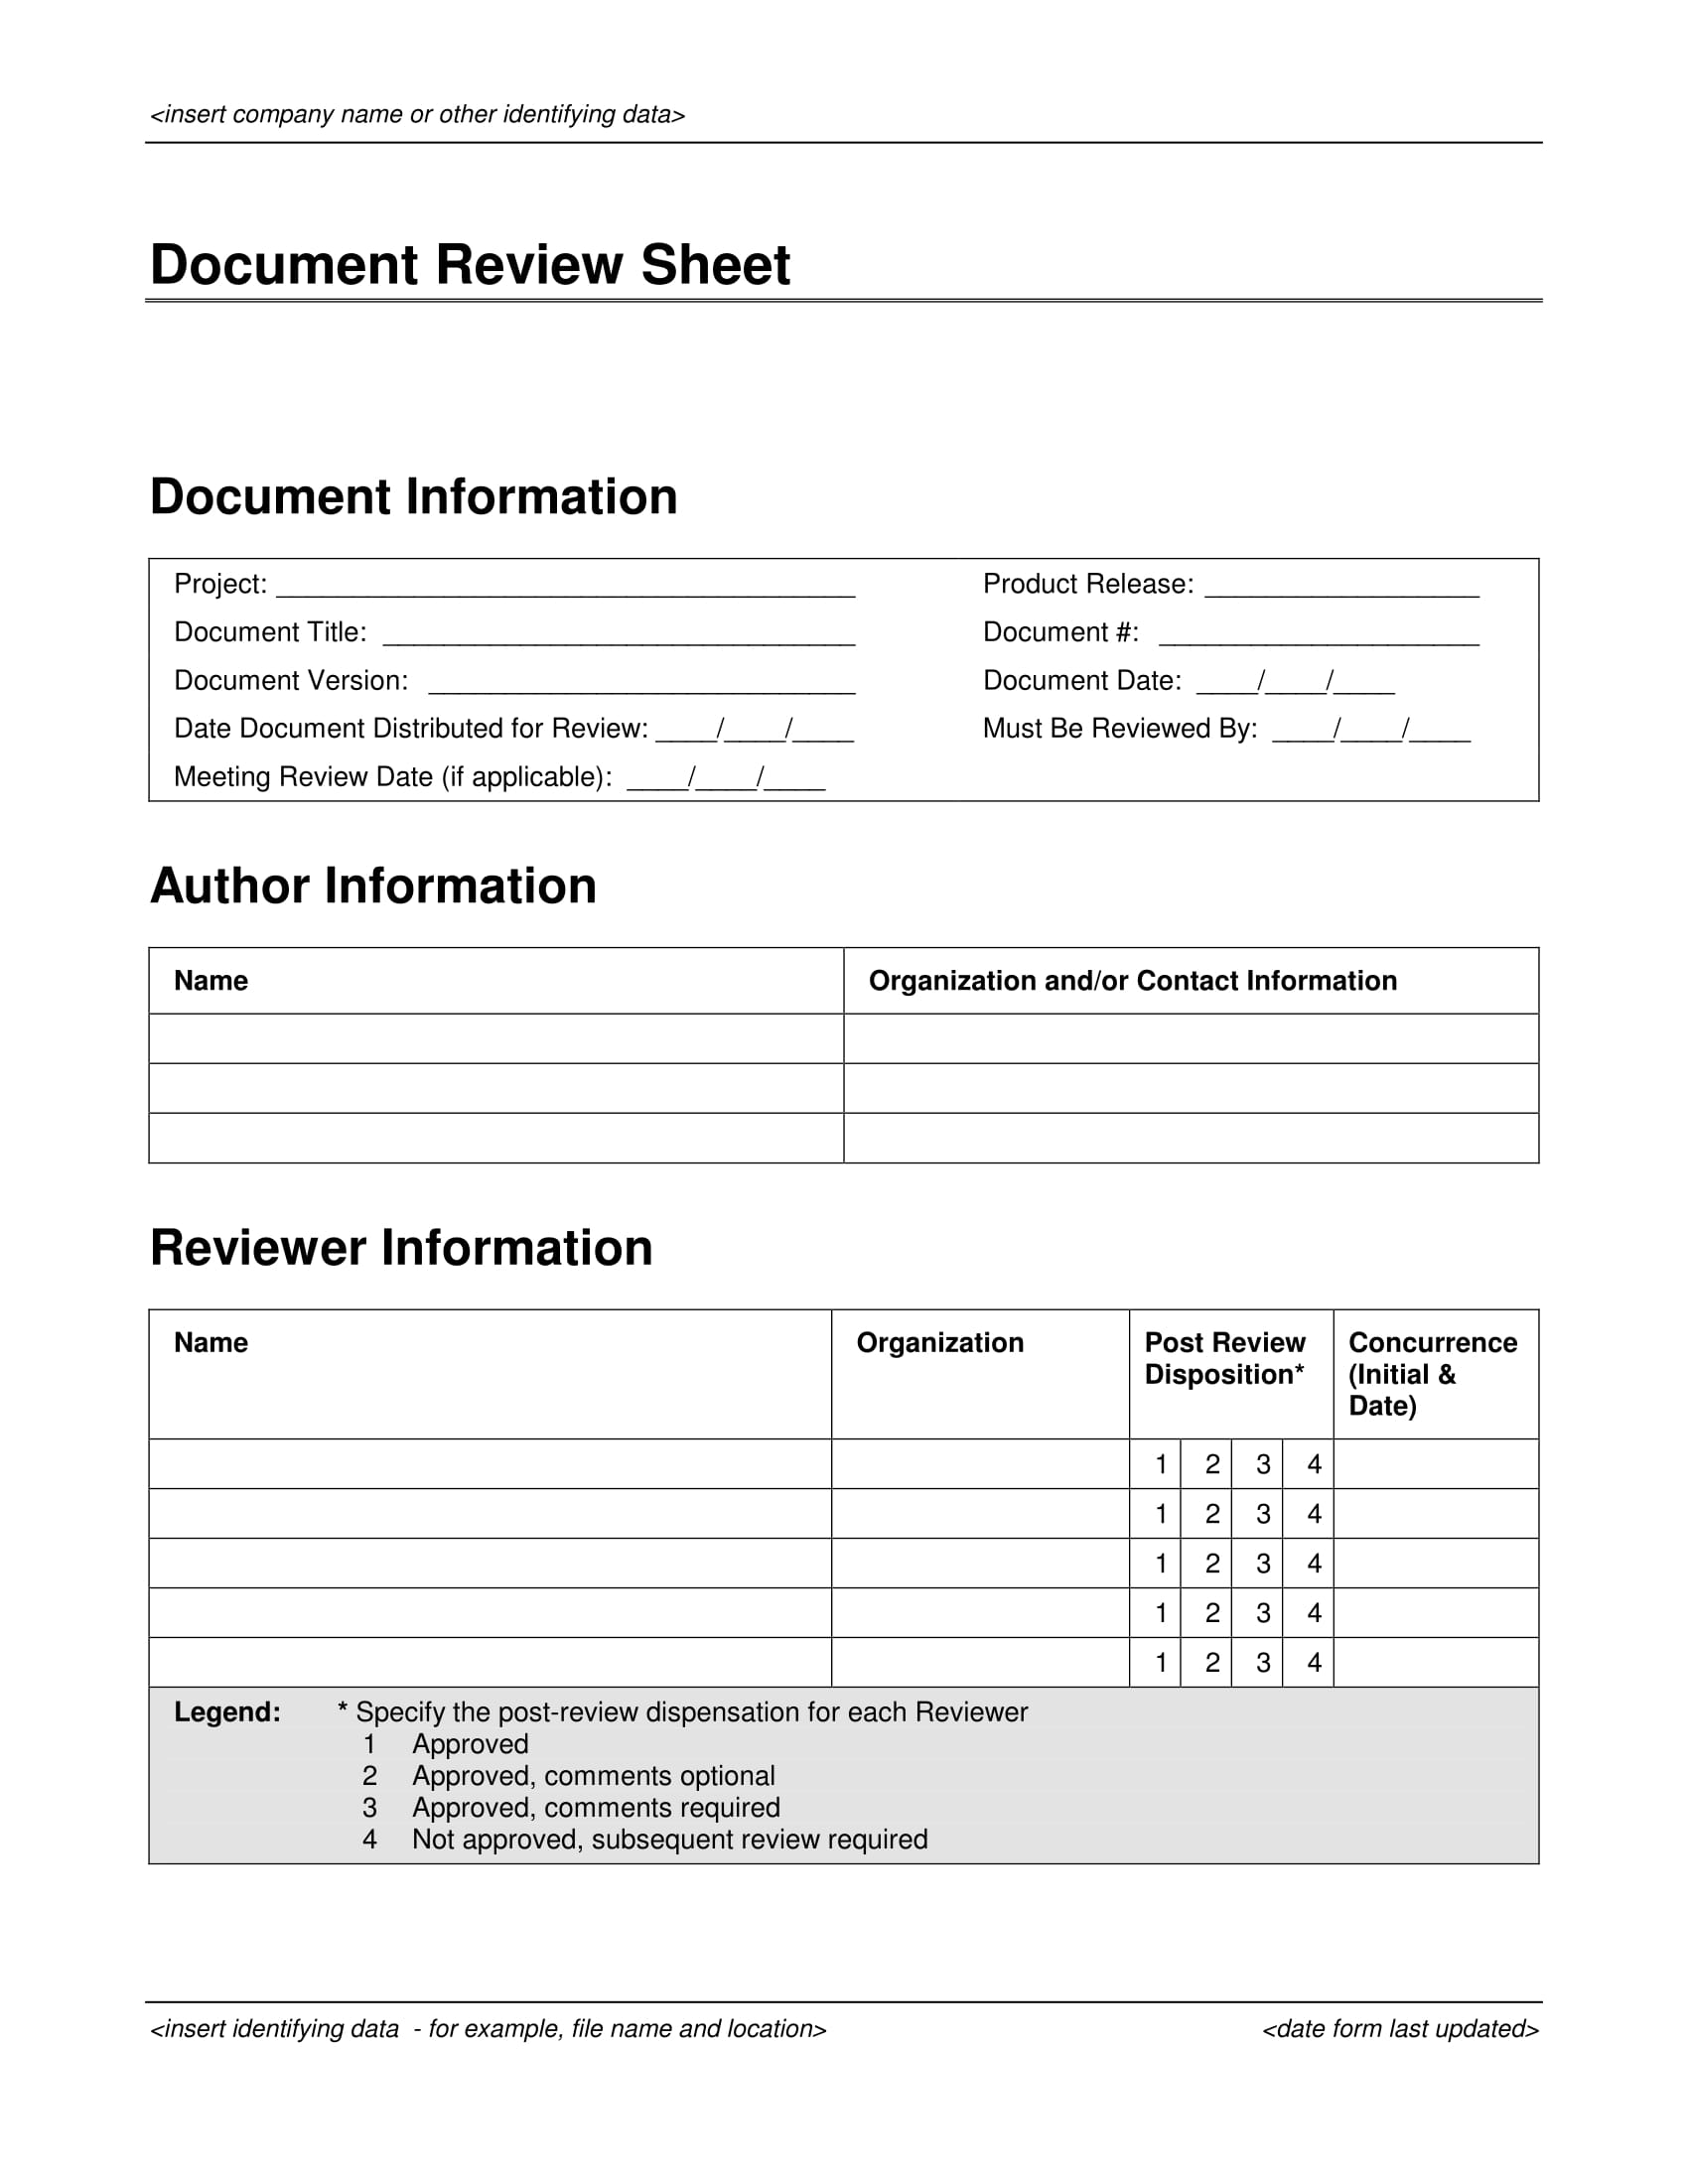 document review form sheet 1